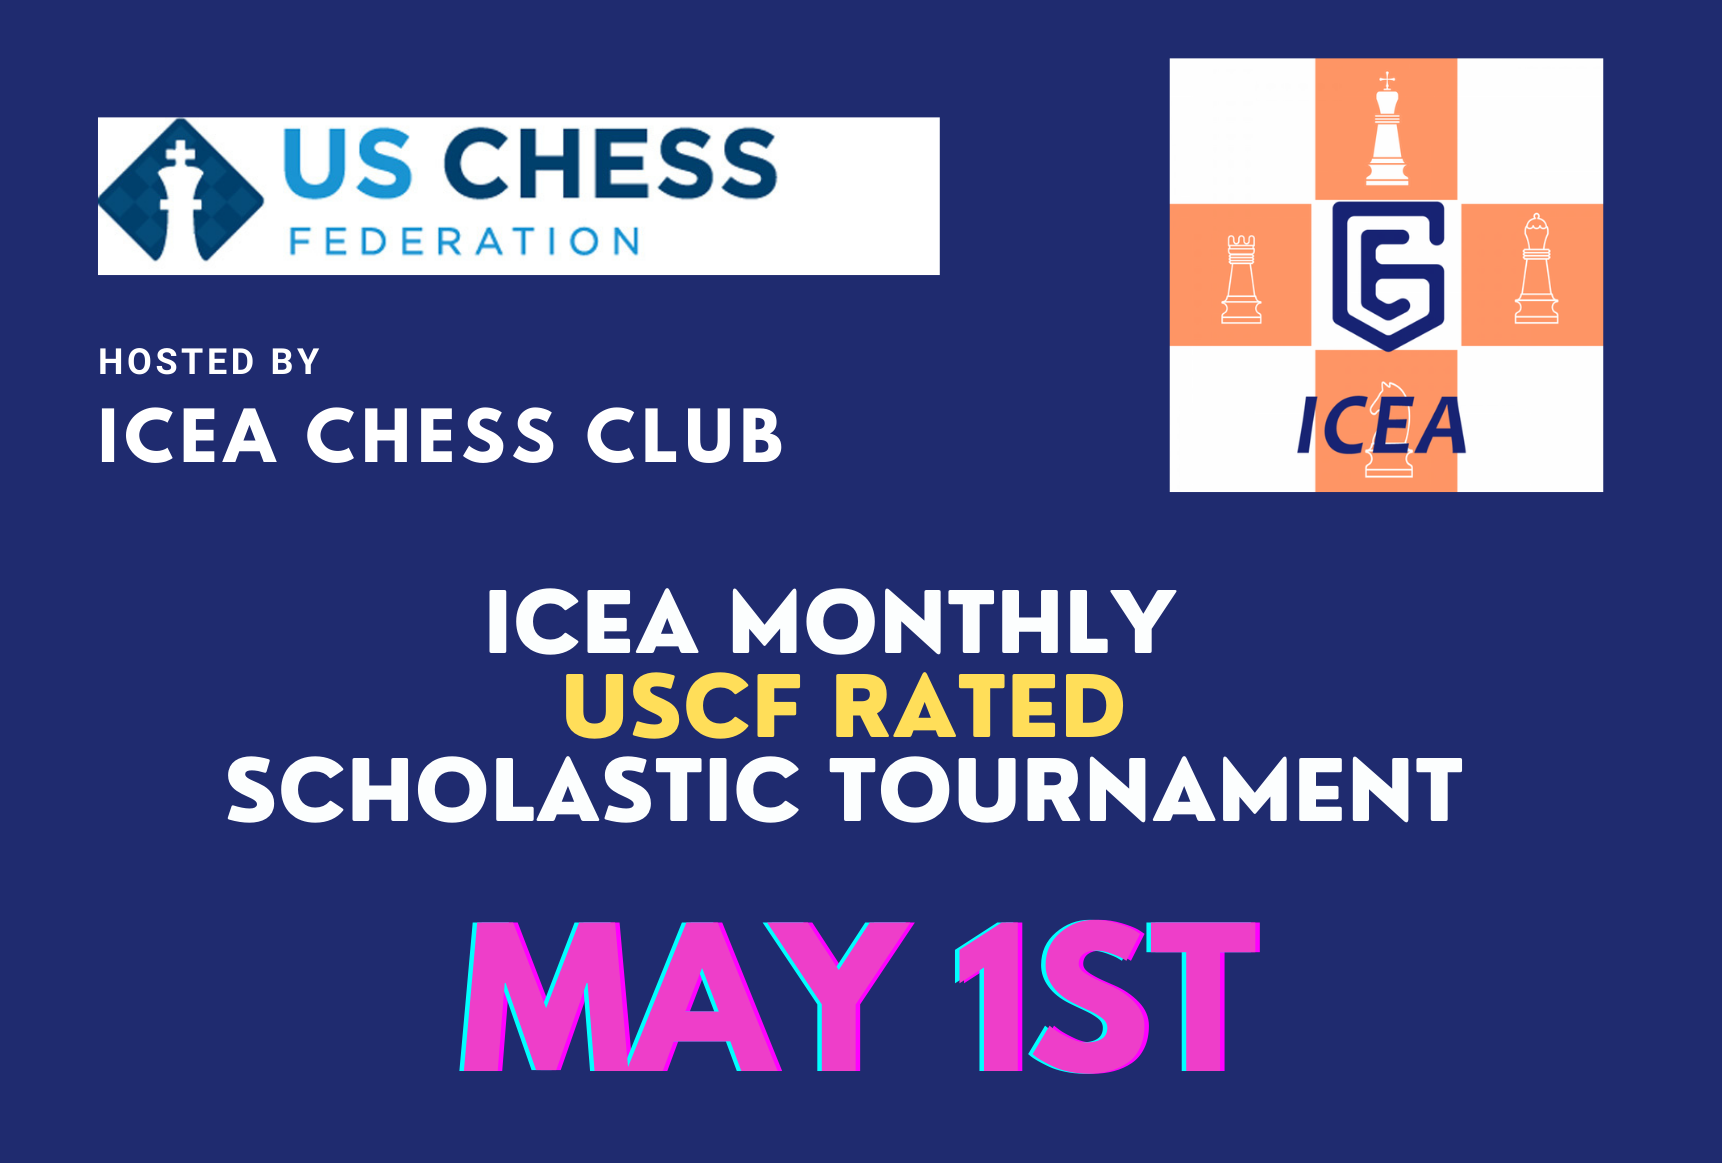 ICEA Monthly Scholastic Online Tournament - May 1st